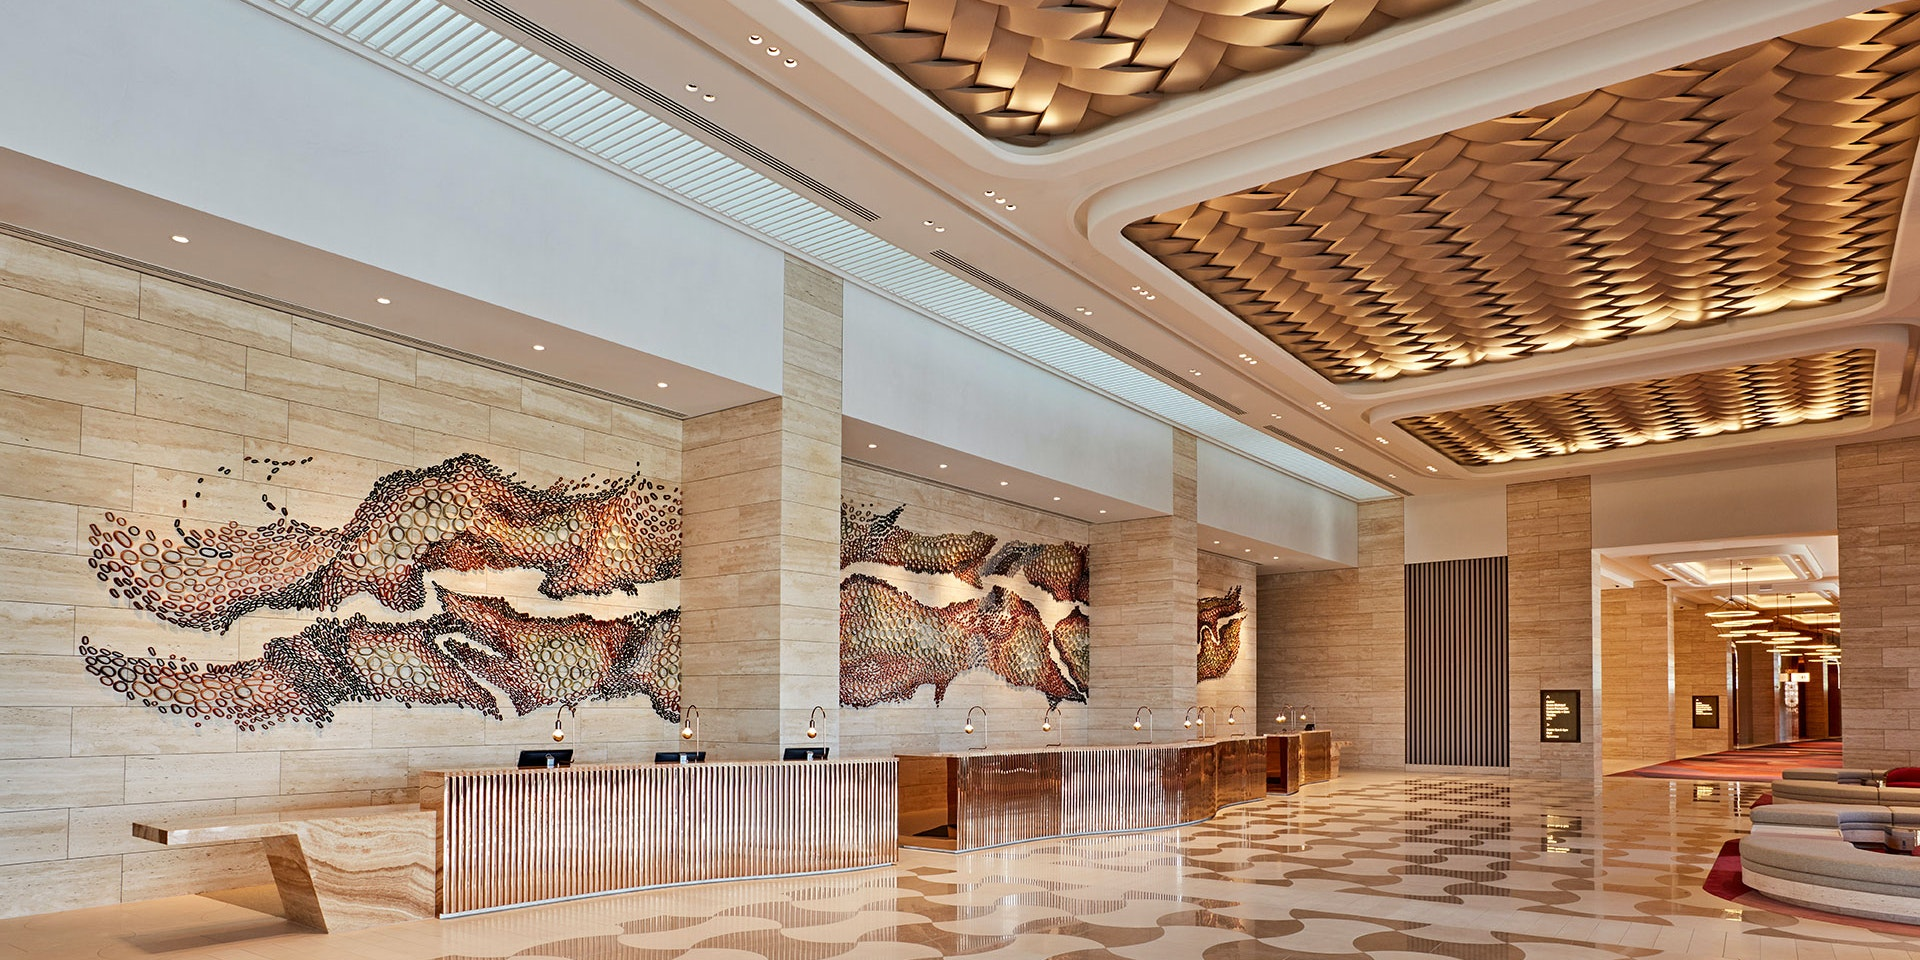 Aris LED linear floodlight in application, installed in Crown Casino in Perth. Architectural LED lighting.